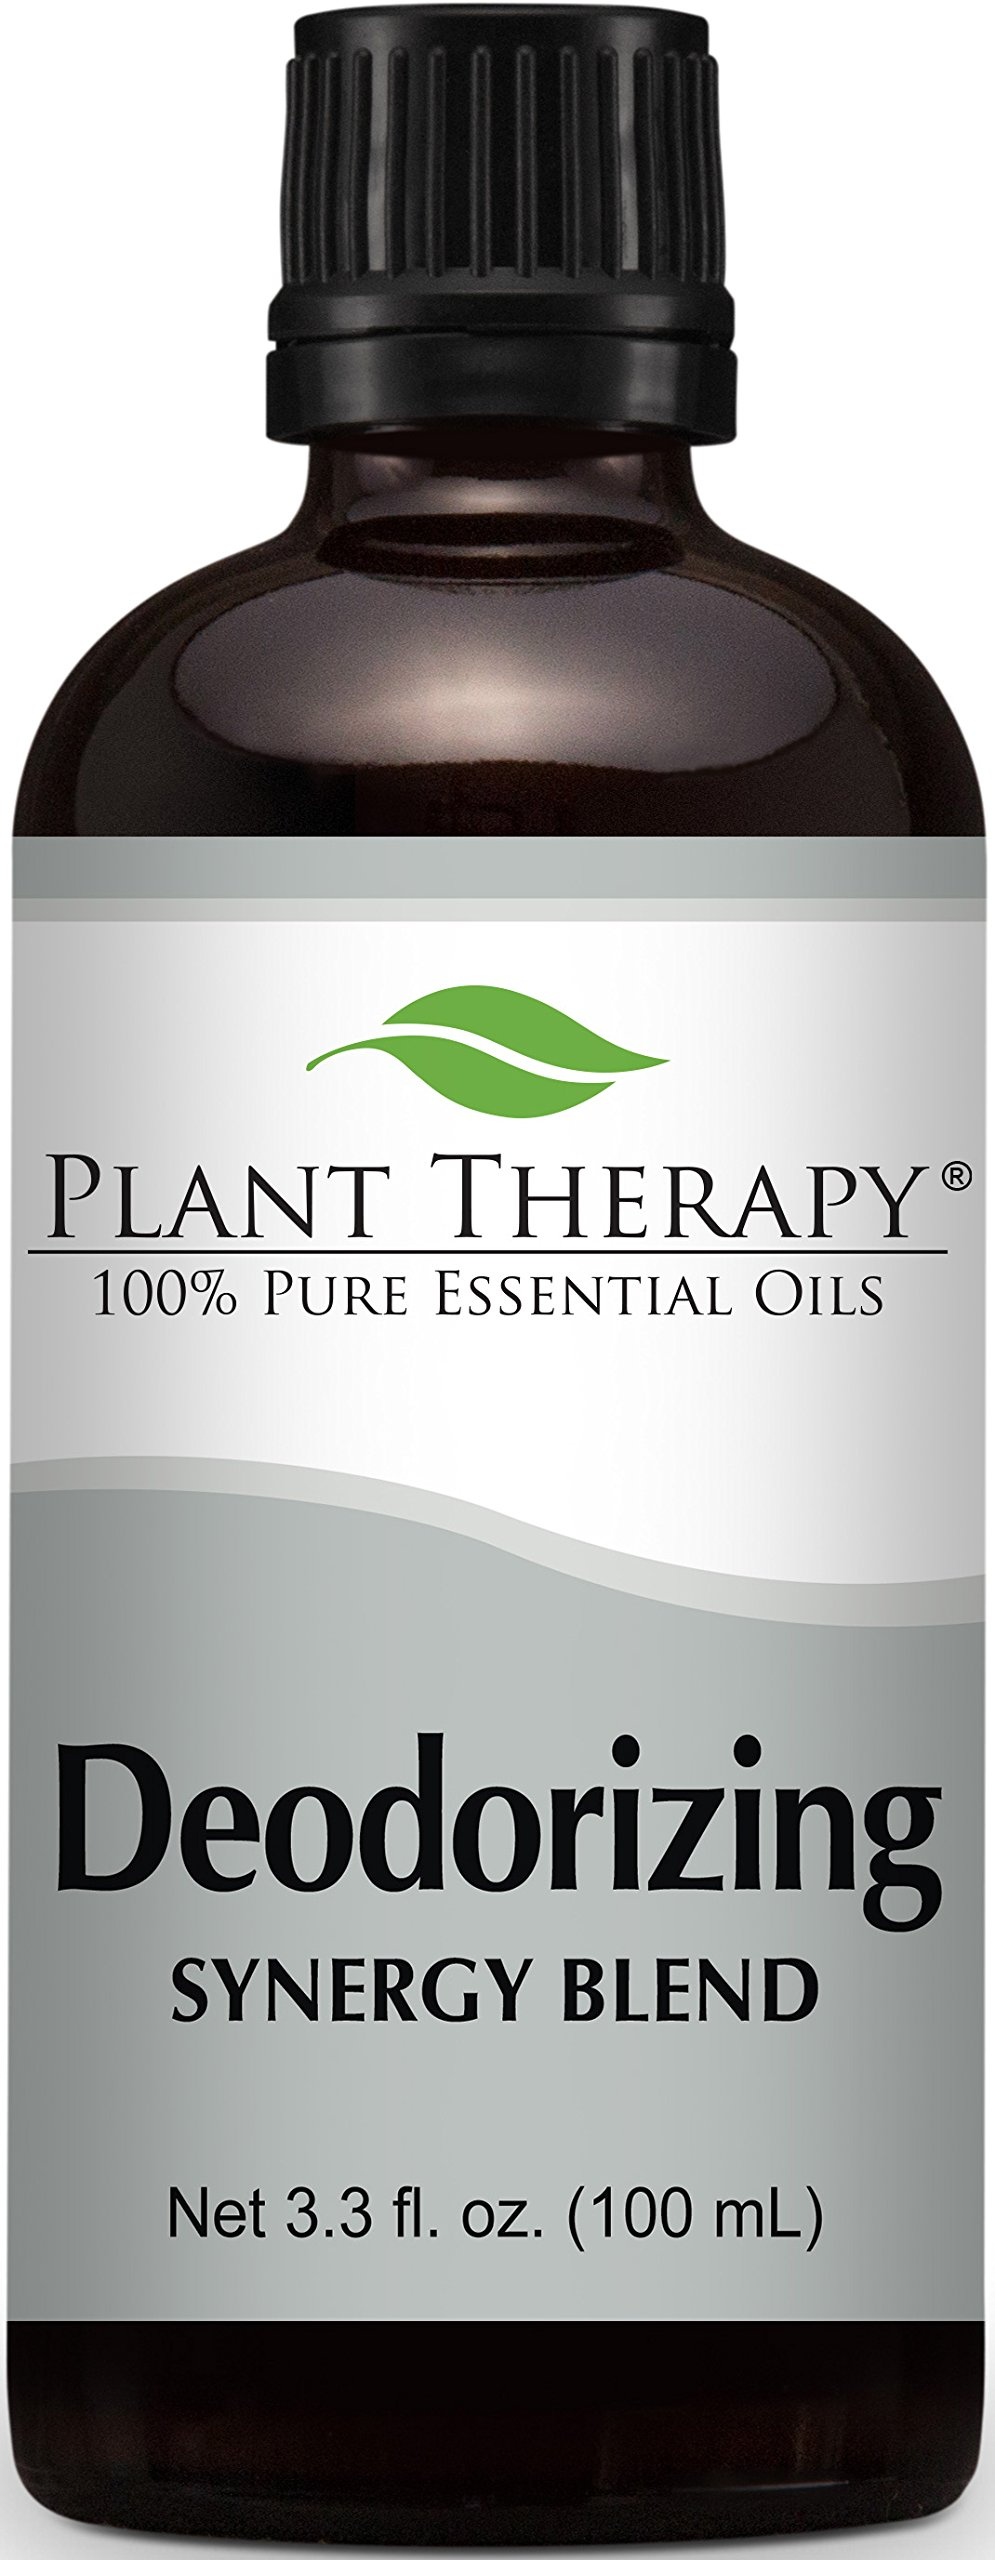 Plant Therapy Deodorizing Synergy Essential Oil Blend 100 mL (3.3 oz) 100% Pure, Undiluted, Therapeutic Grade by Plant Therapy